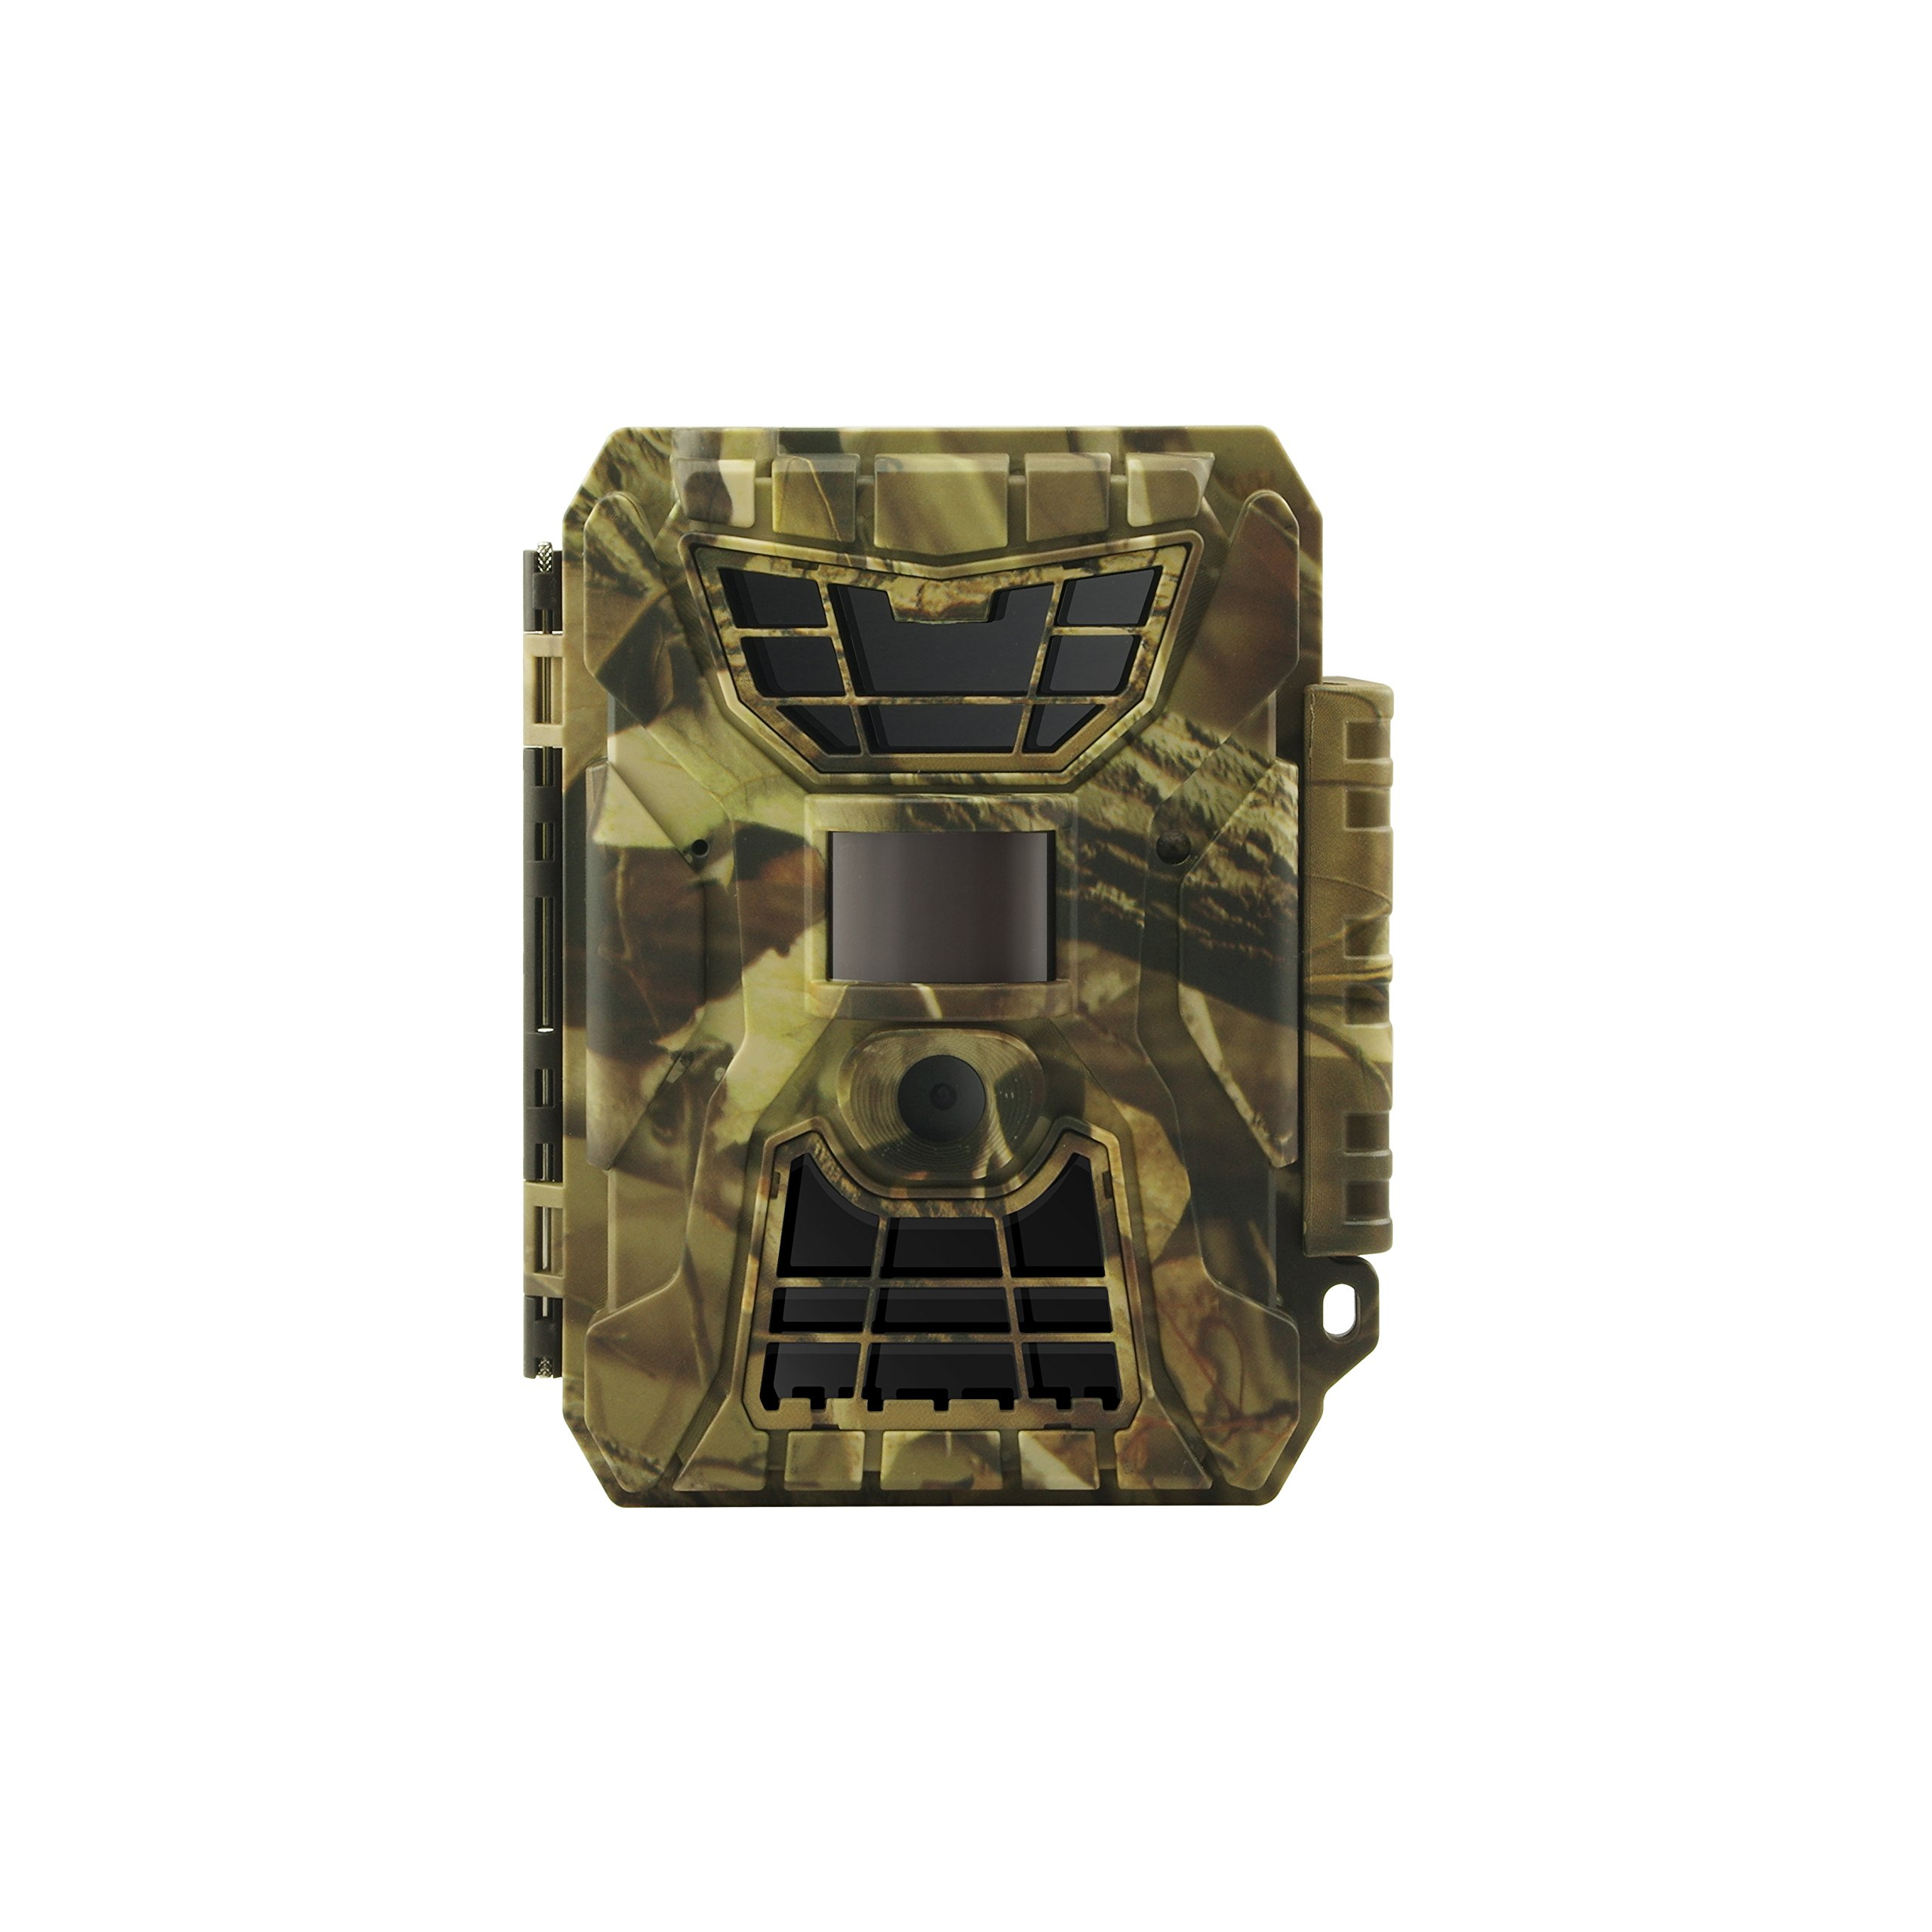 HKCYSEA New 12MP WildlifeTrail Game & Hunting Camera,Infrared Night Vision Batteries Power 15Meters Animal Trap Fast Trigger Speed for Wildlife Observation and Security